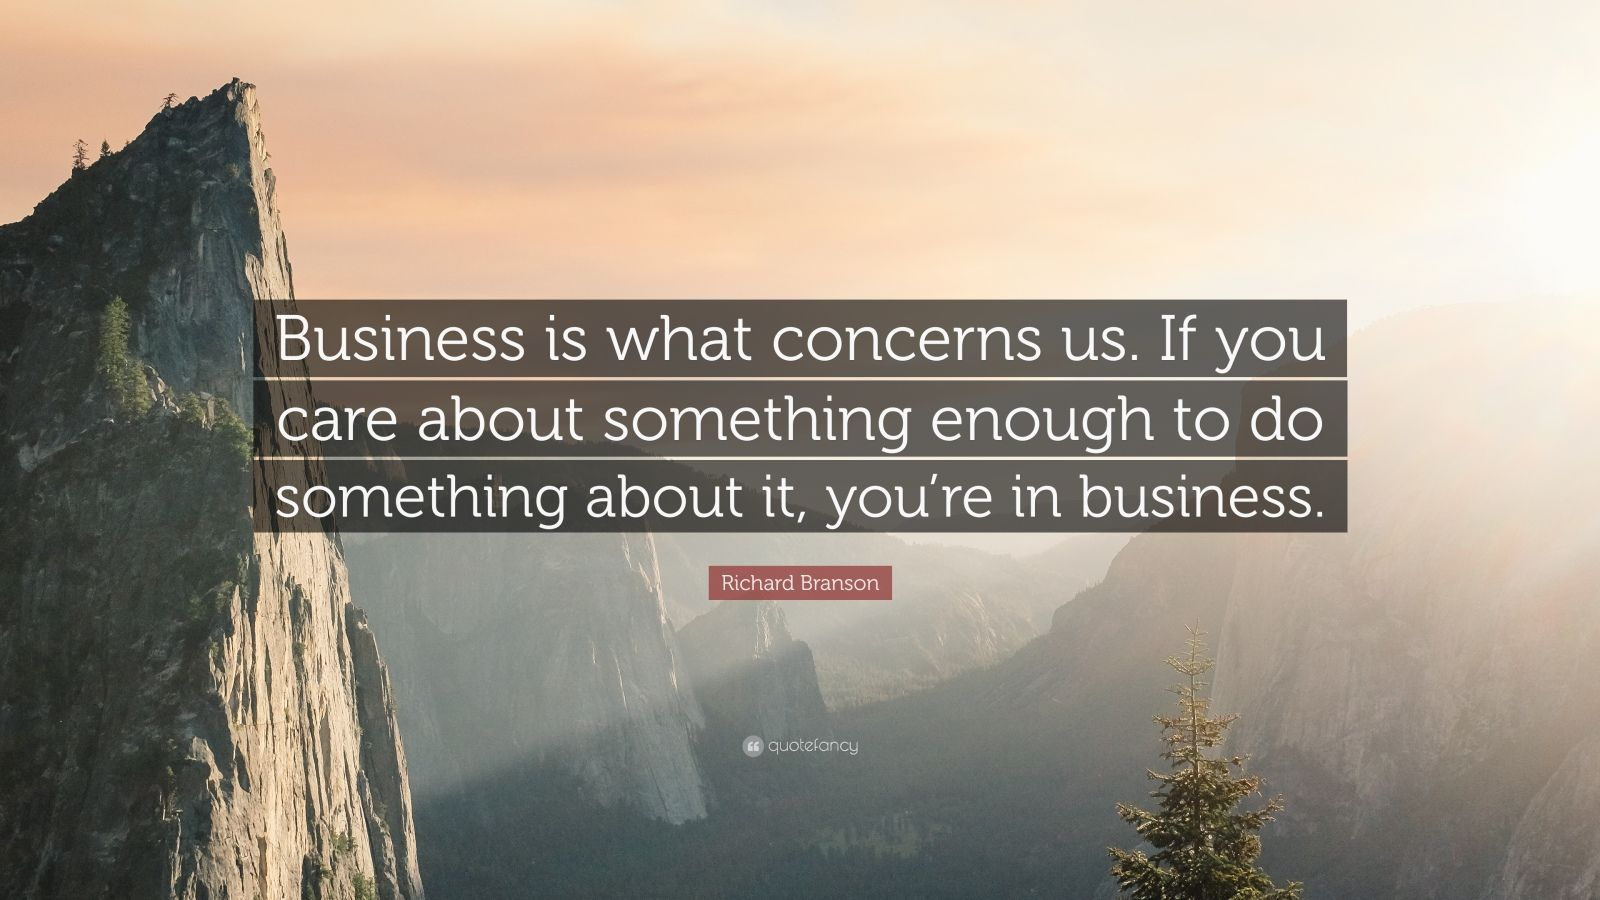 """Richard Branson Quote: """"Business is what concerns us. If you care about something enough to do something about it, you're in business."""""""